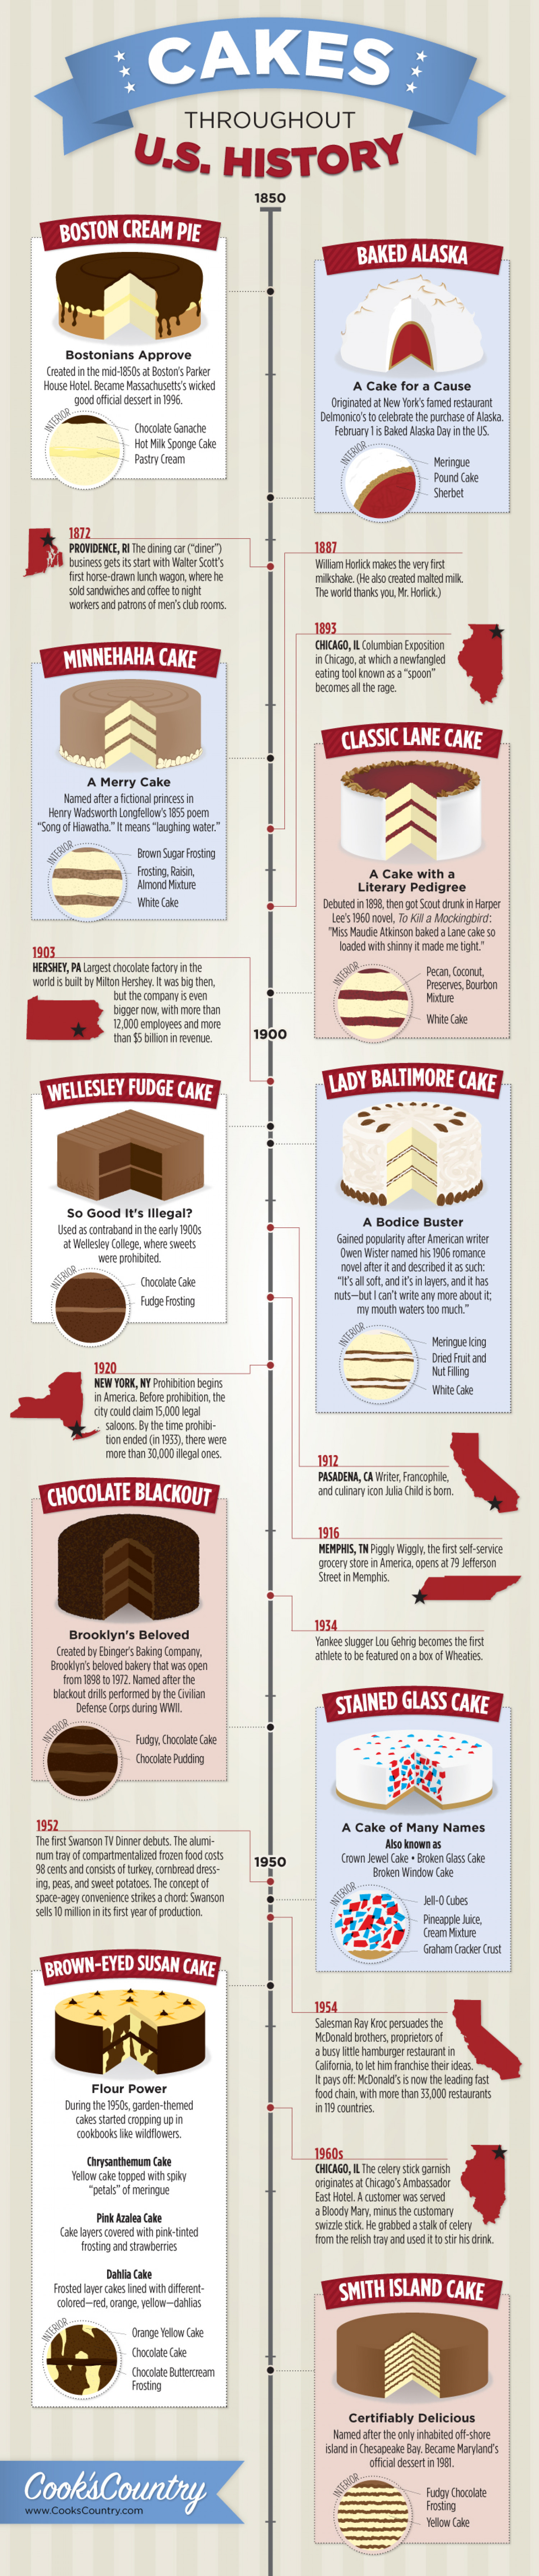 Cakes Throughout U.S. History Infographic